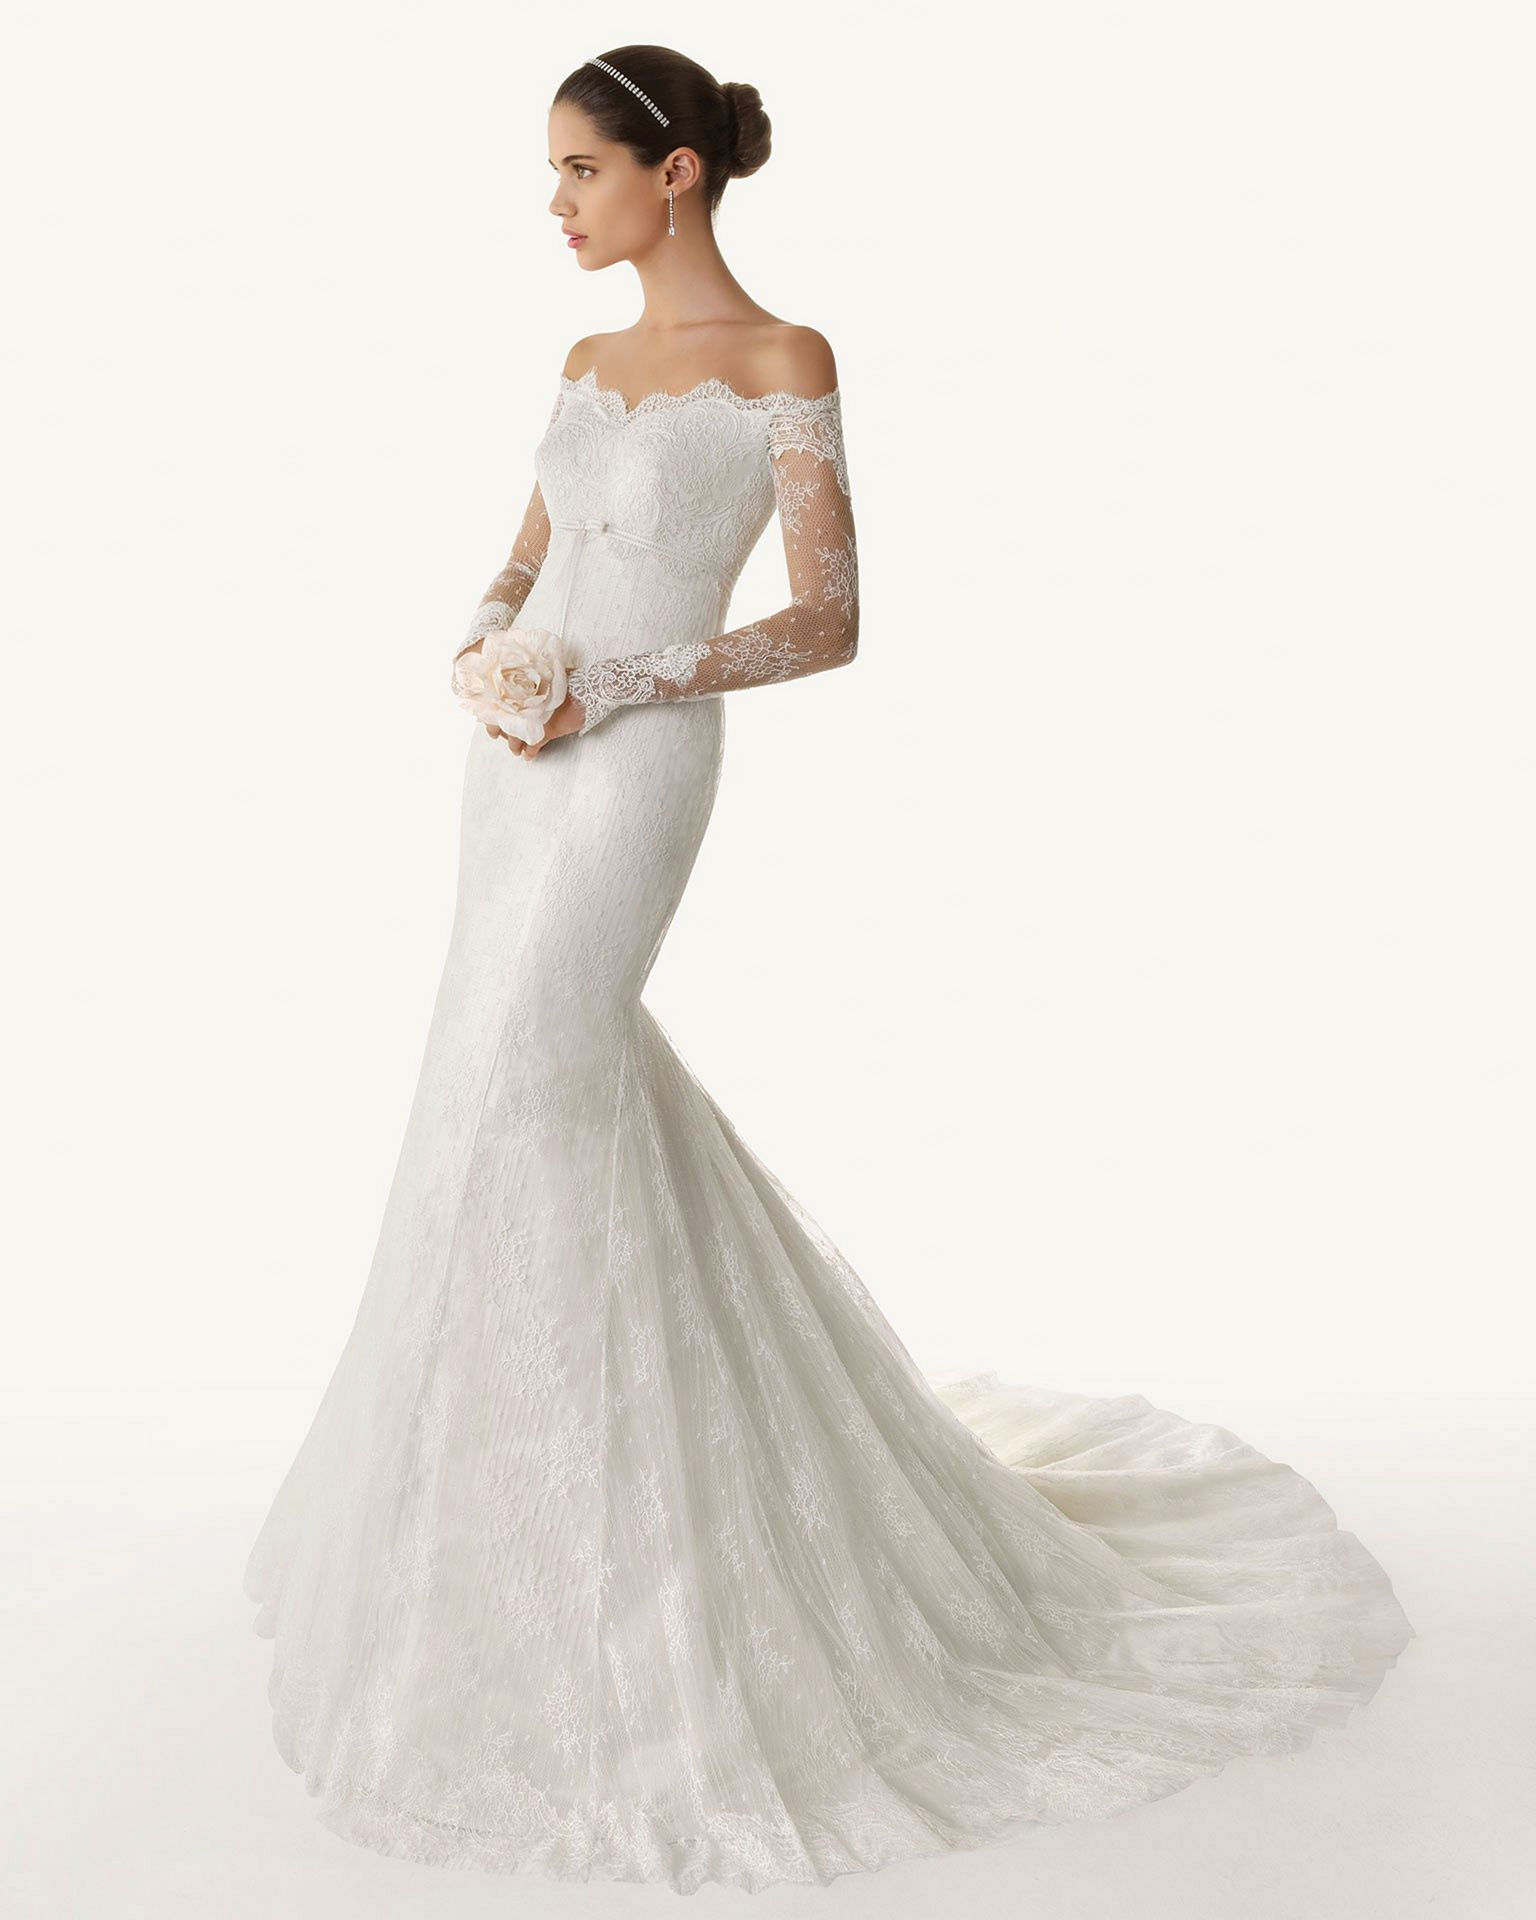 Jackie kennedy wedding dress on display   Beautiful Mermaid Wedding Dresses and Bridal Gowns For Amazing